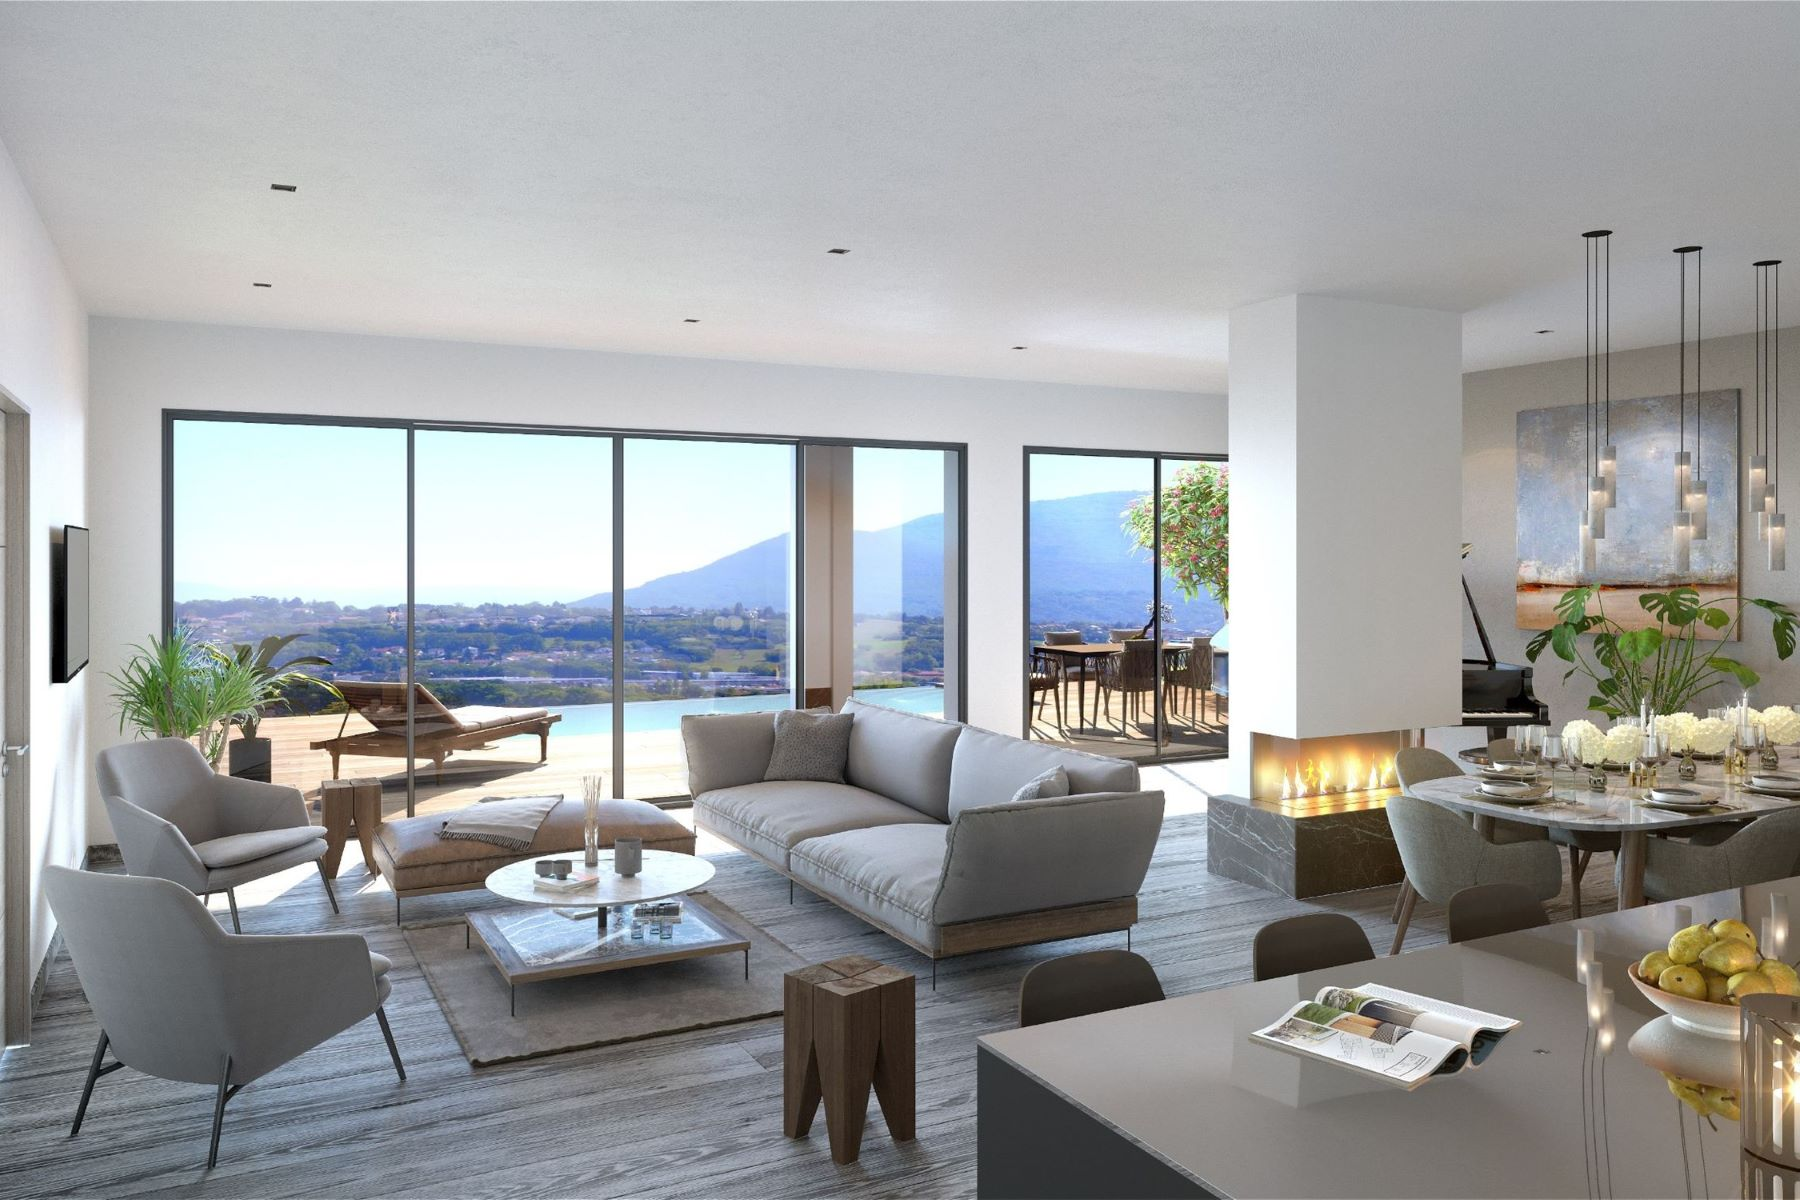 Single Family Home for Sale at EXCLUSIVITE – RESIDENCE SAKURA TIMELESS - NOUVEAU PROGRAMME Megeve, Rhone-Alpes 74120 France